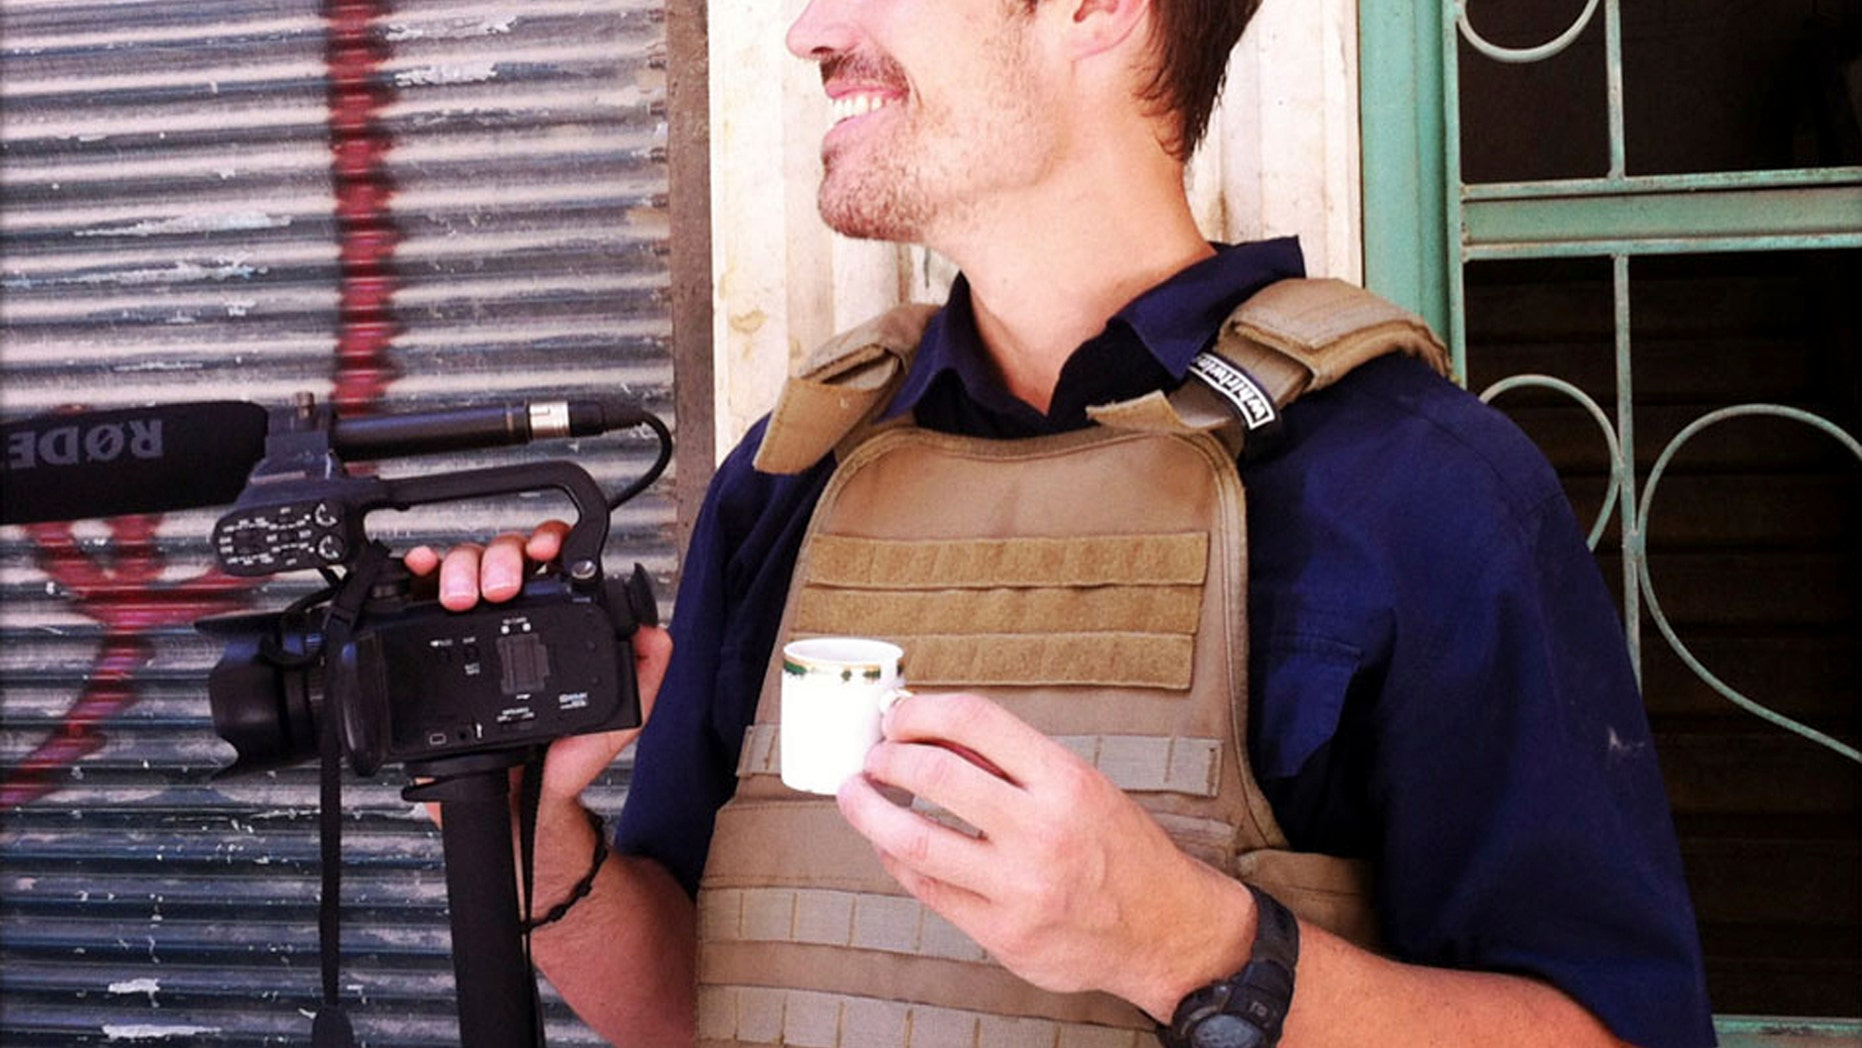 This file photo posted on the website freejamesfoley.org shows journalist James Foley in Aleppo, Syria, in July, 2012.